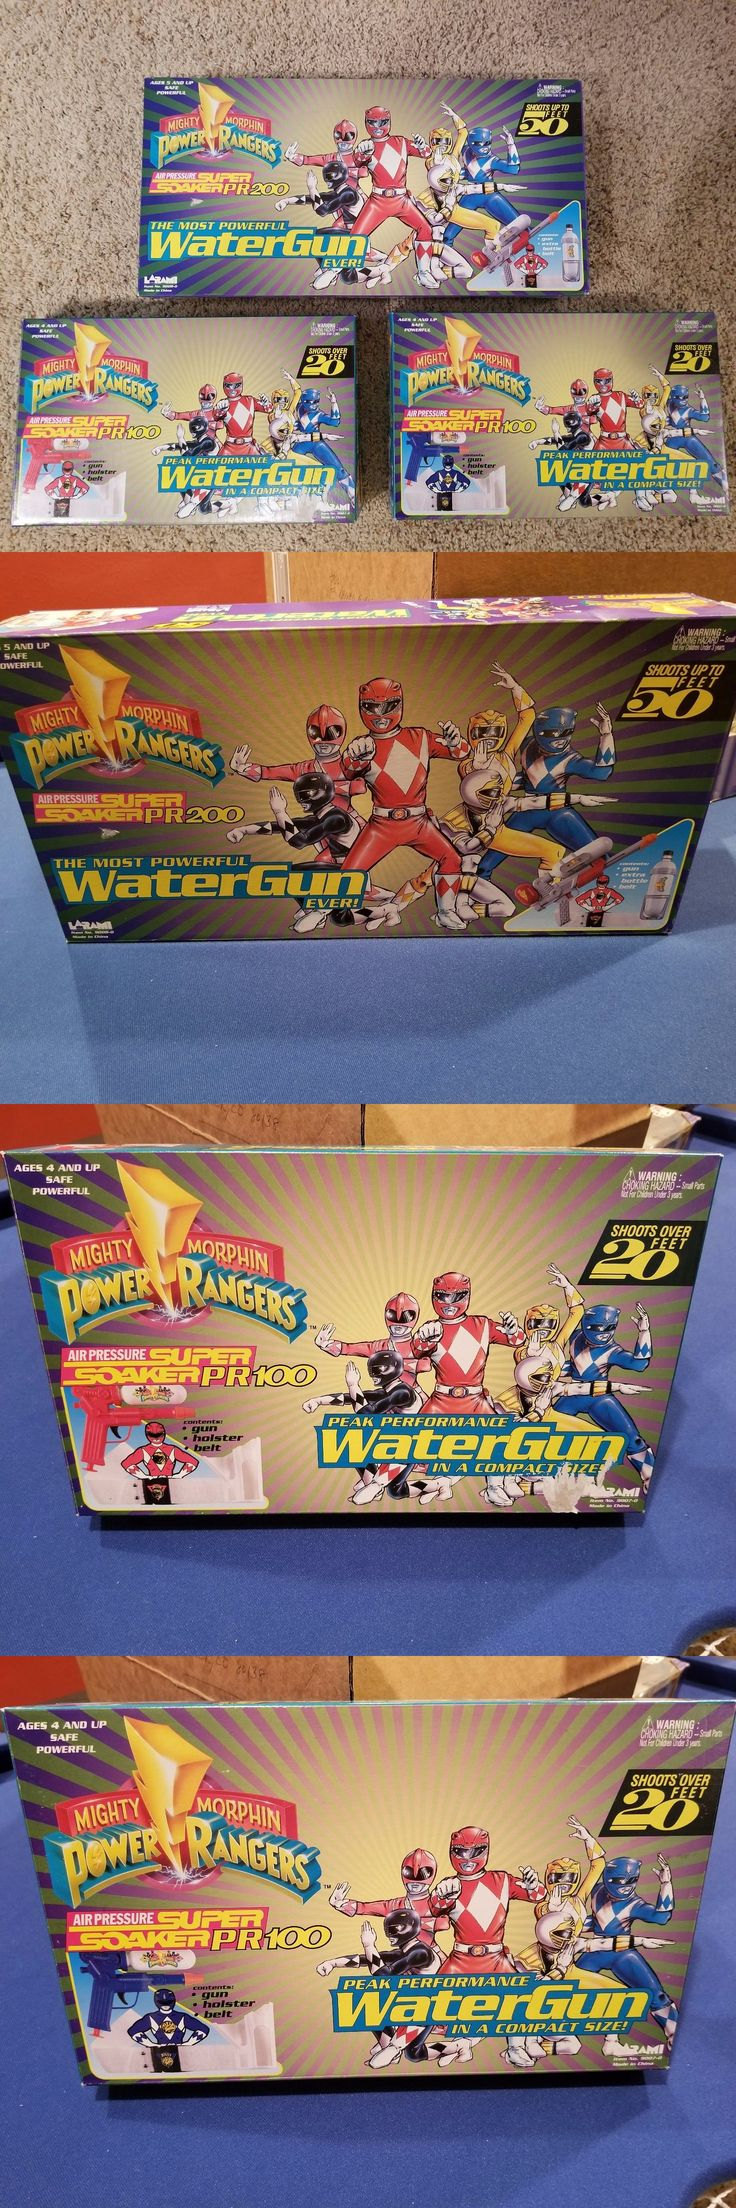 Squirt Toys 145991: 3 Brand New Vintage Power Ranger Super Soakers! Red Pr100, Blue Pr100, Red Pr200 -> BUY IT NOW ONLY: $135 on eBay!